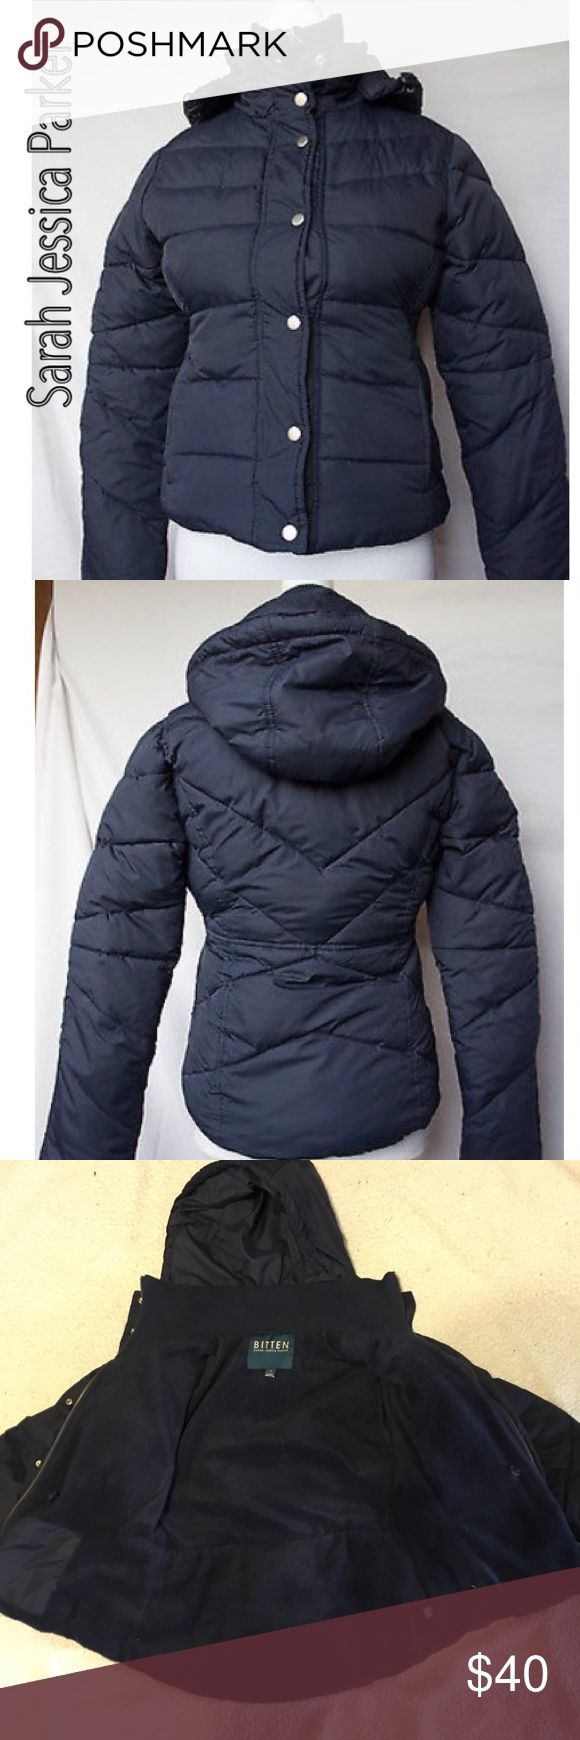 """Sarah Jessica Parker's puffer coat """"Bitten"""" This jacket is perfect for a cold winter! Has a detachable hood, Interior lining  has zipper closure, and exterior buttons down.  To lined exterior and one interior pocket. 25% down, 25% feathers, 50% polyfill Sarah Jessica Parker Jackets & Coats Puffers"""